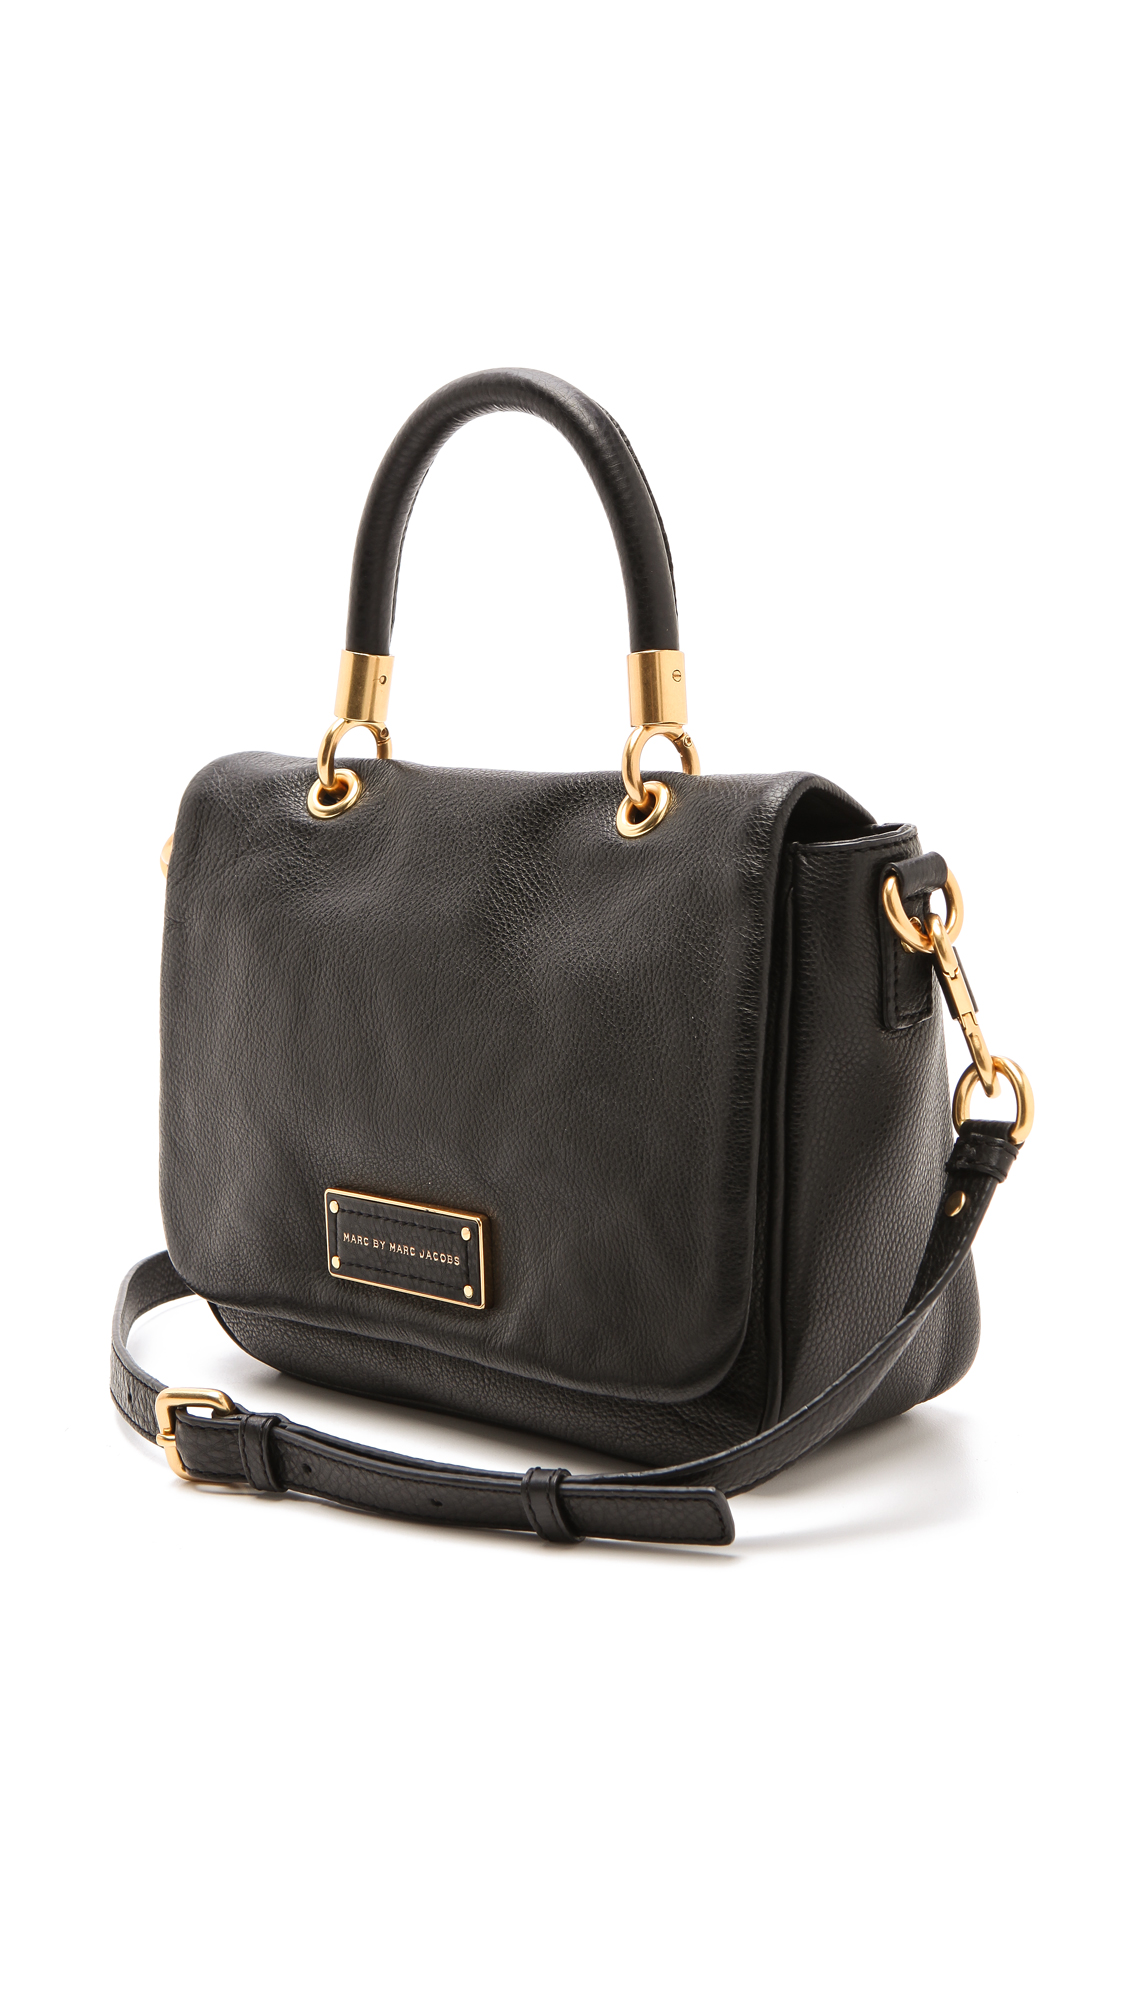 4c2fa723aae1 Marc by Marc Jacobs Too Hot to Handle Small Top Handle Bag